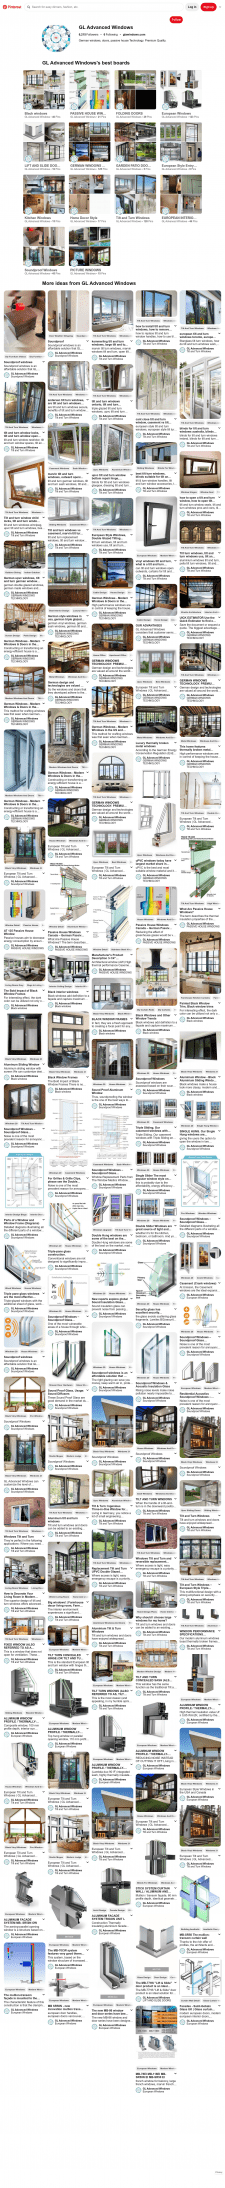 German windows, doors, passive house Technology